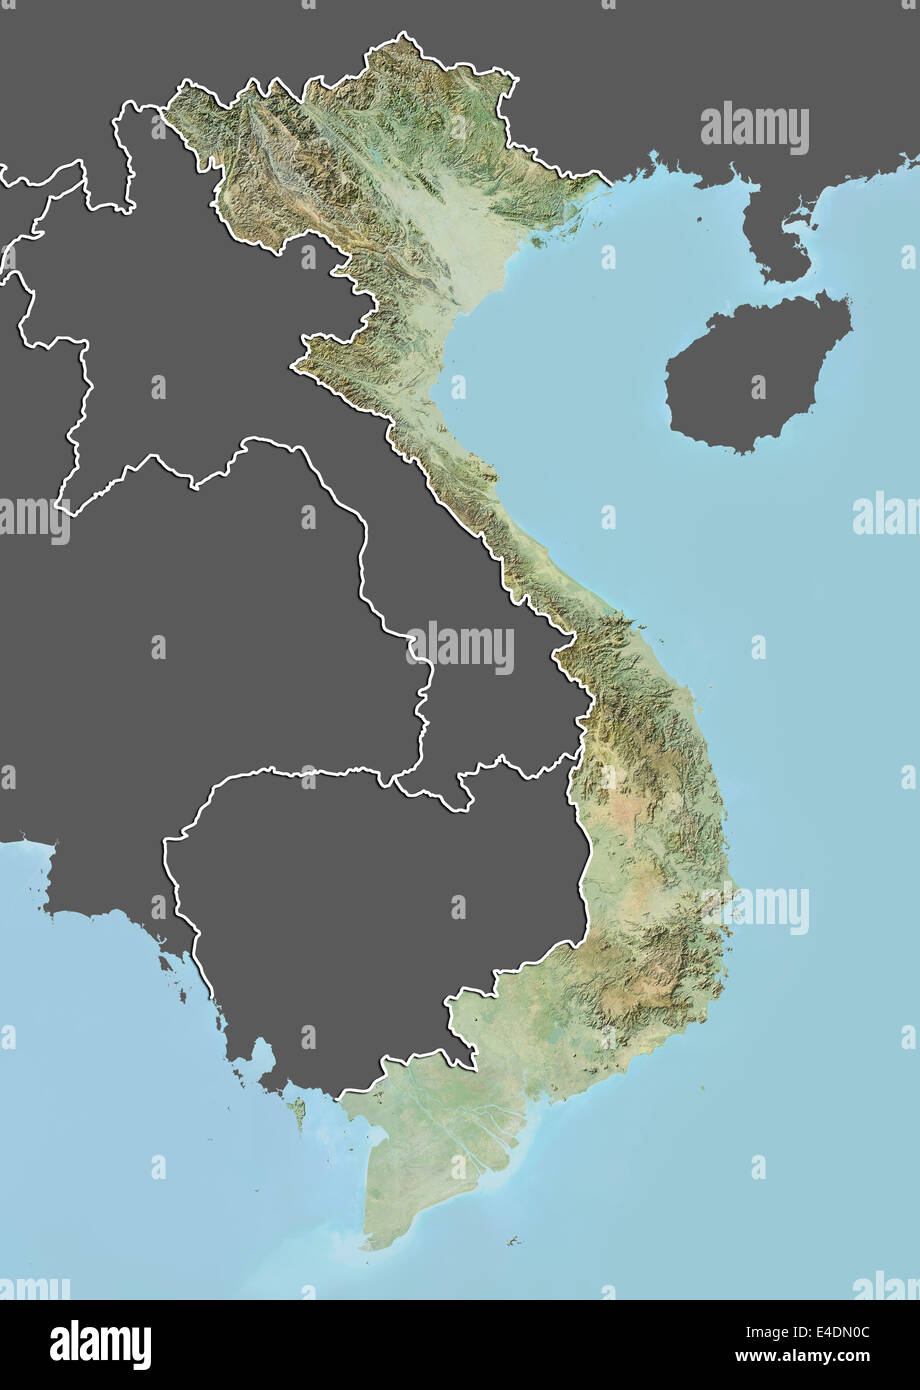 Vietnam map satellite geography stock photos vietnam map satellite vietnam relief map with border and mask stock image publicscrutiny Images